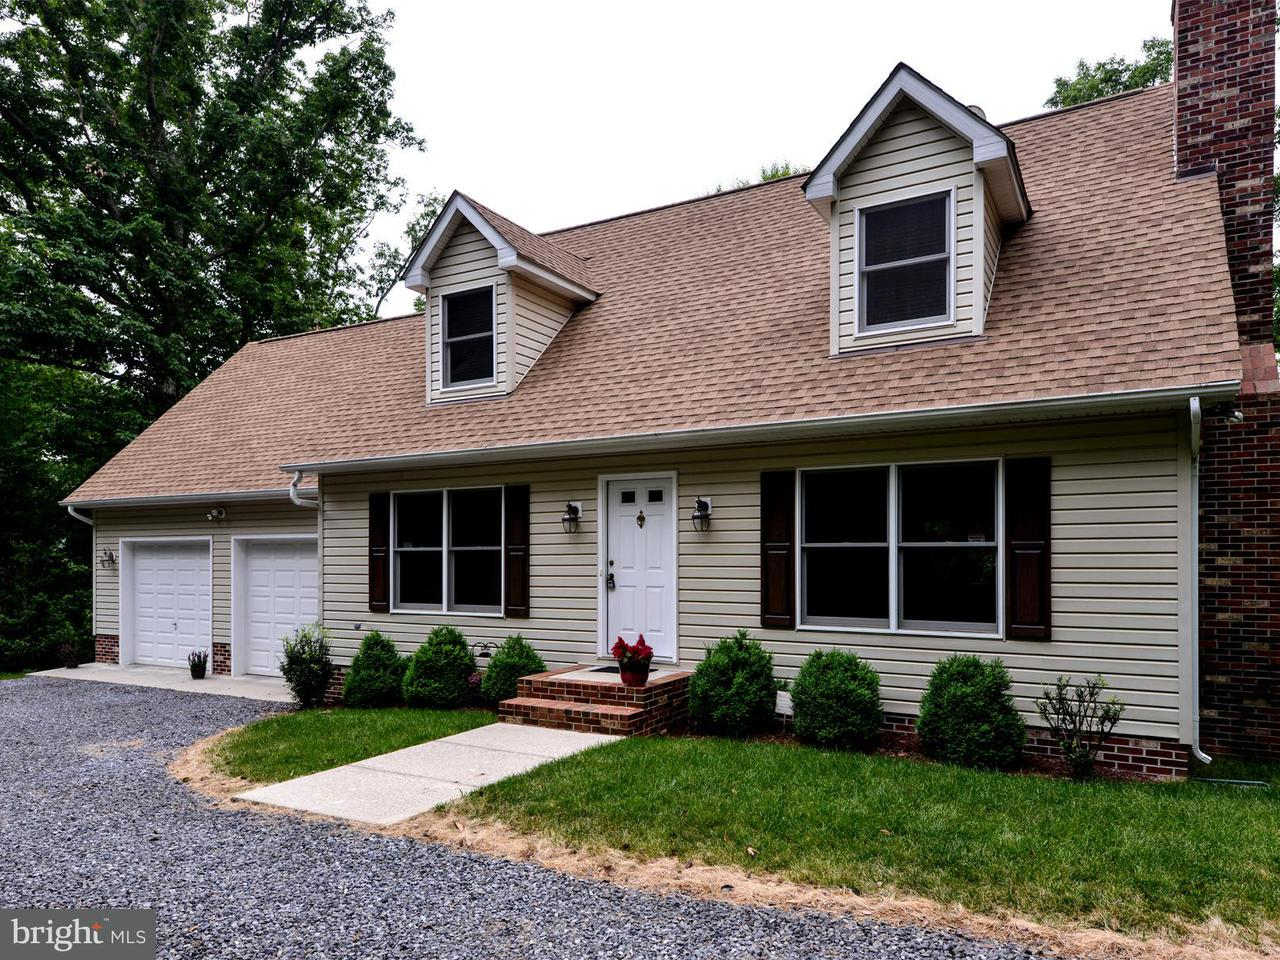 Single Family Home for Sale at 43817 DRUM CLIFF Road 43817 DRUM CLIFF Road Hollywood, Maryland 20636 United States